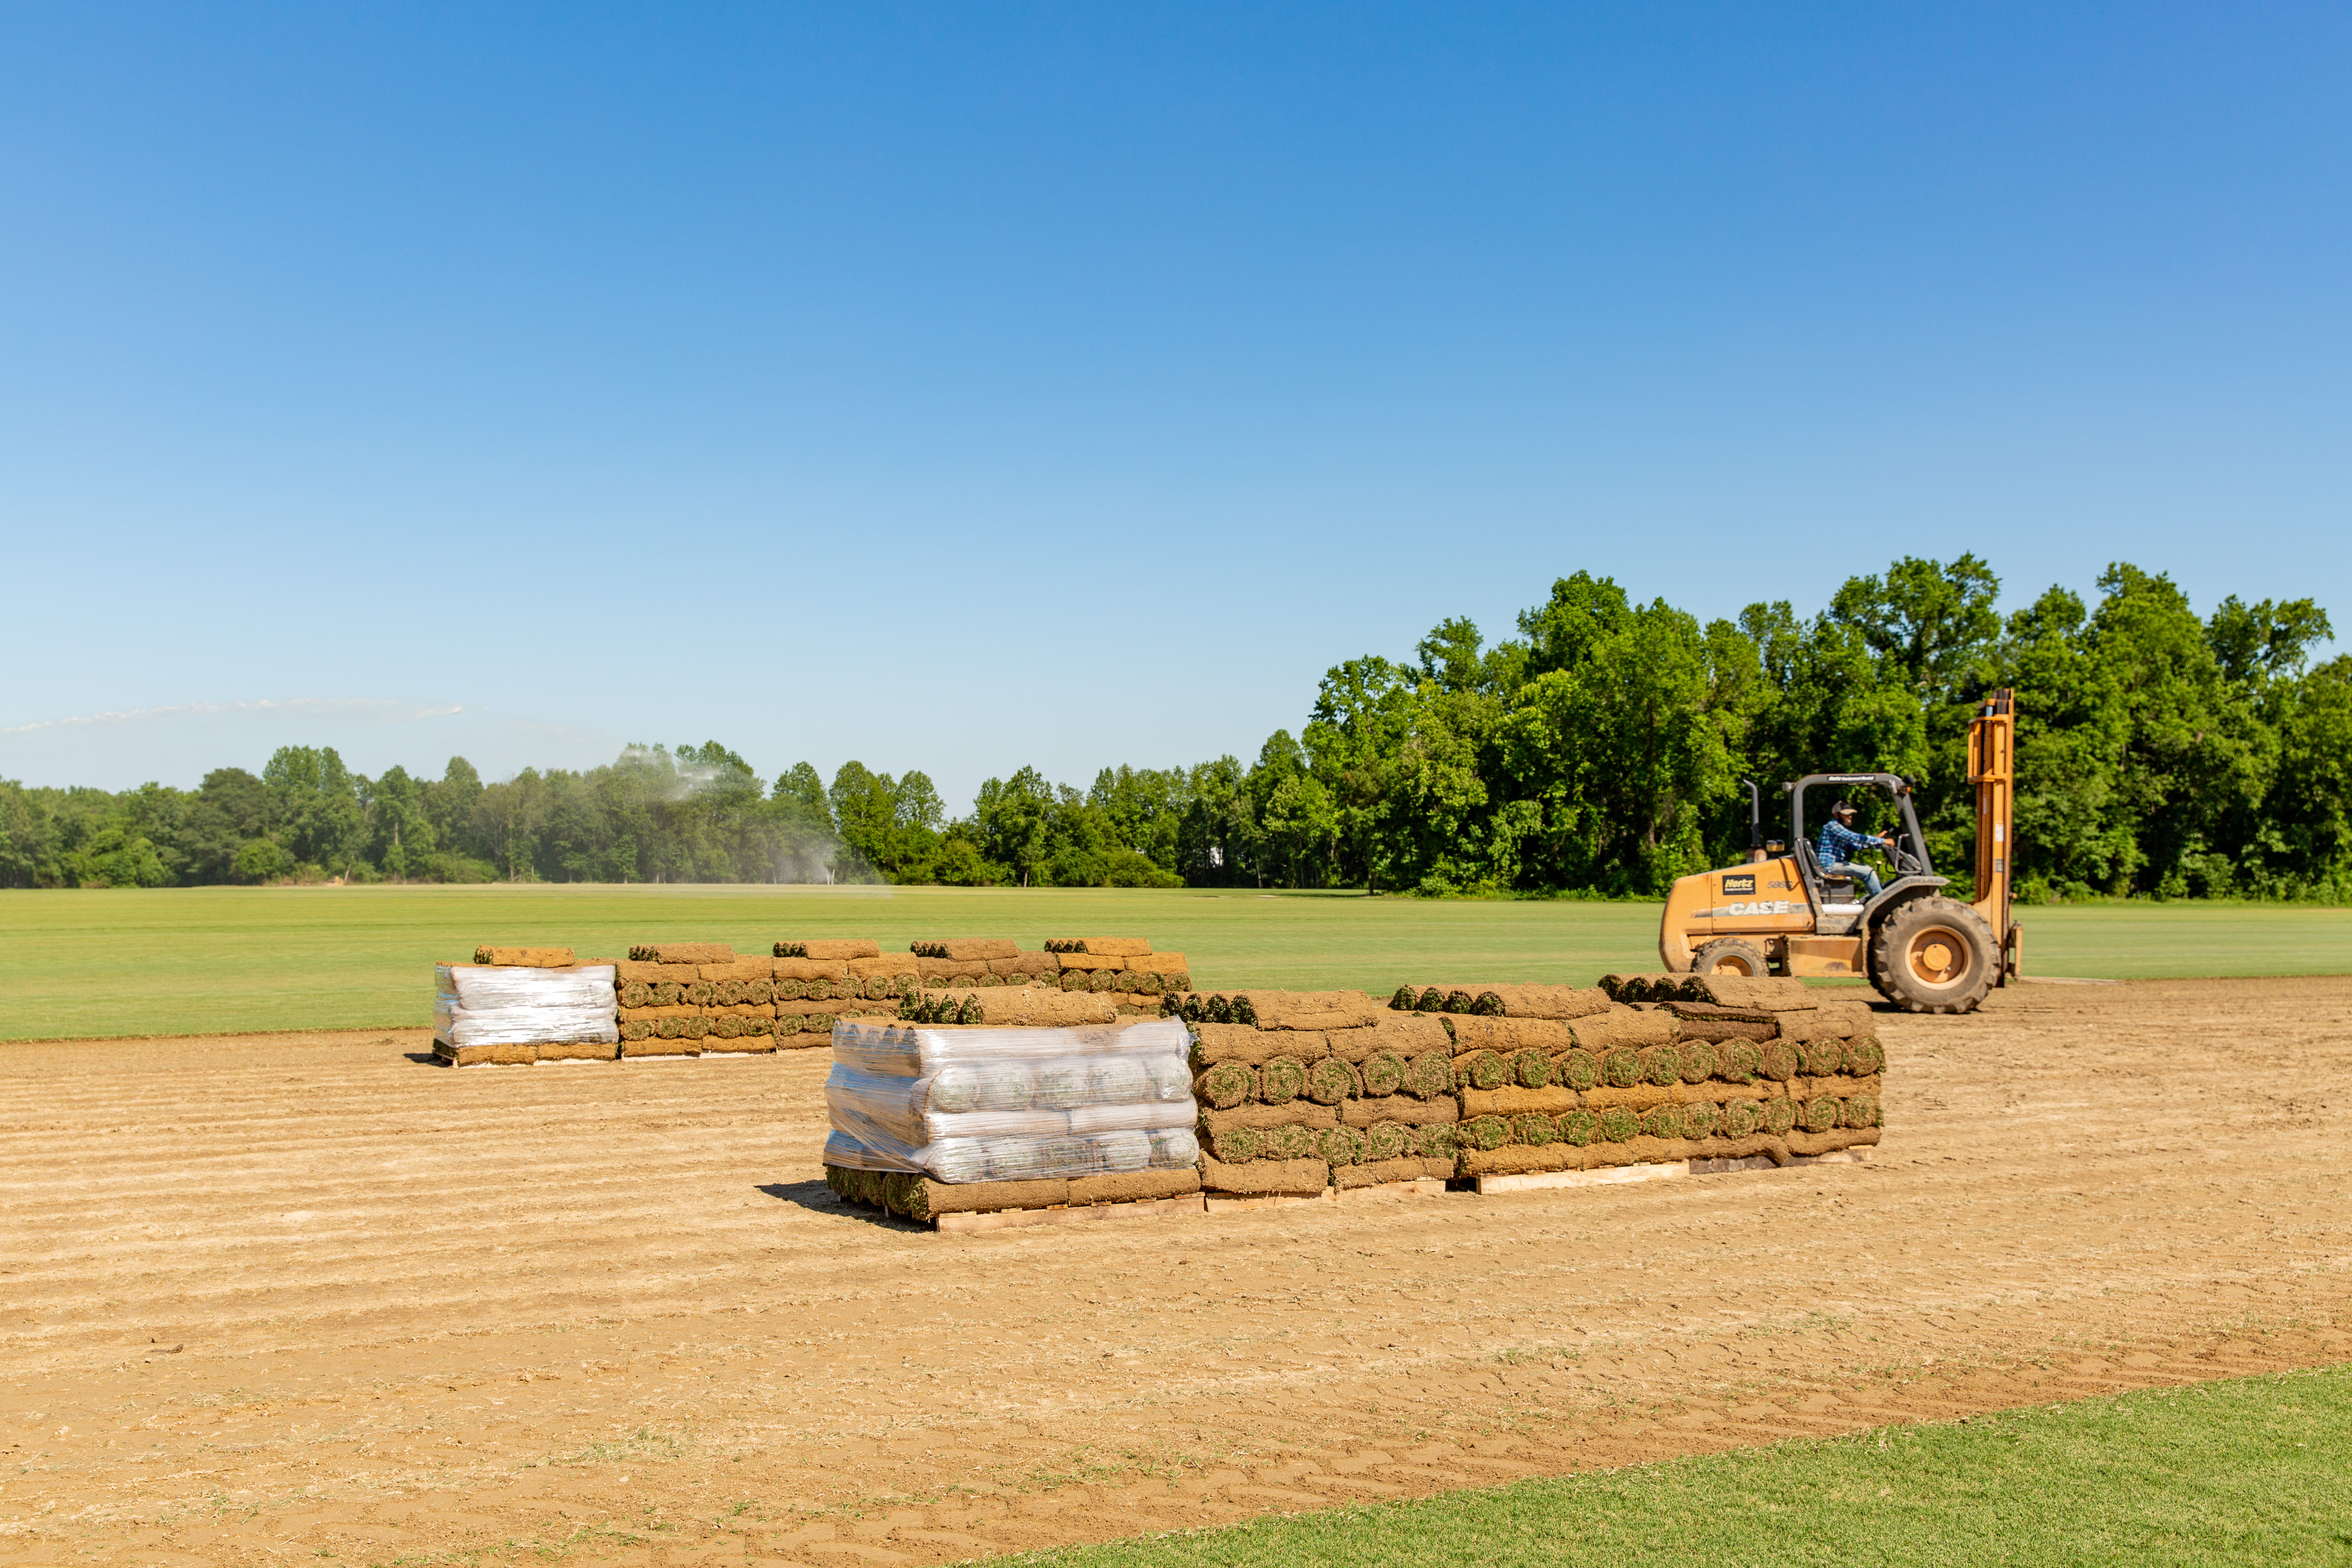 2017 USDA Agriculture Census for Sod Production